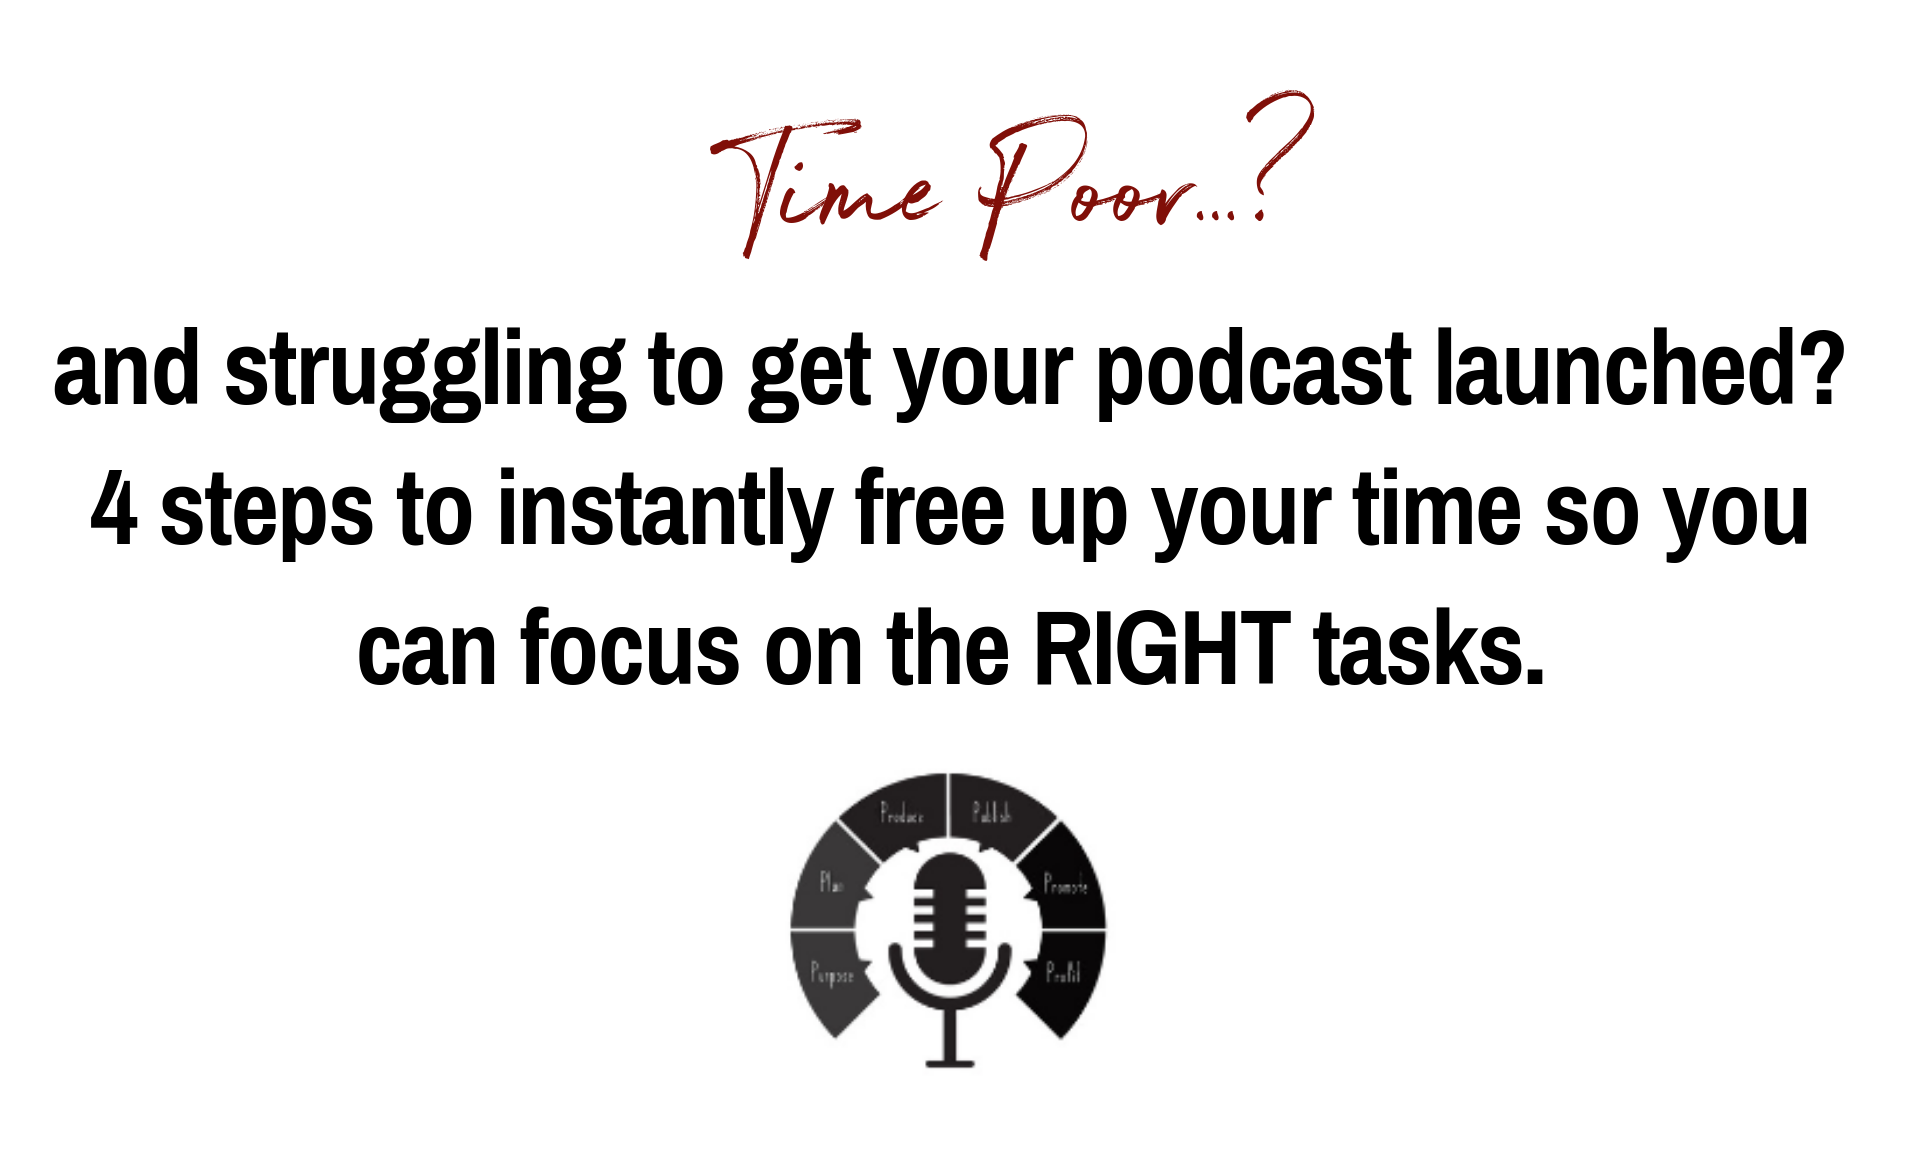 Time Poor and struggling to get your podcast launched? 4 steps to instantly free up your time so you can focus on the RIGHT tasks.